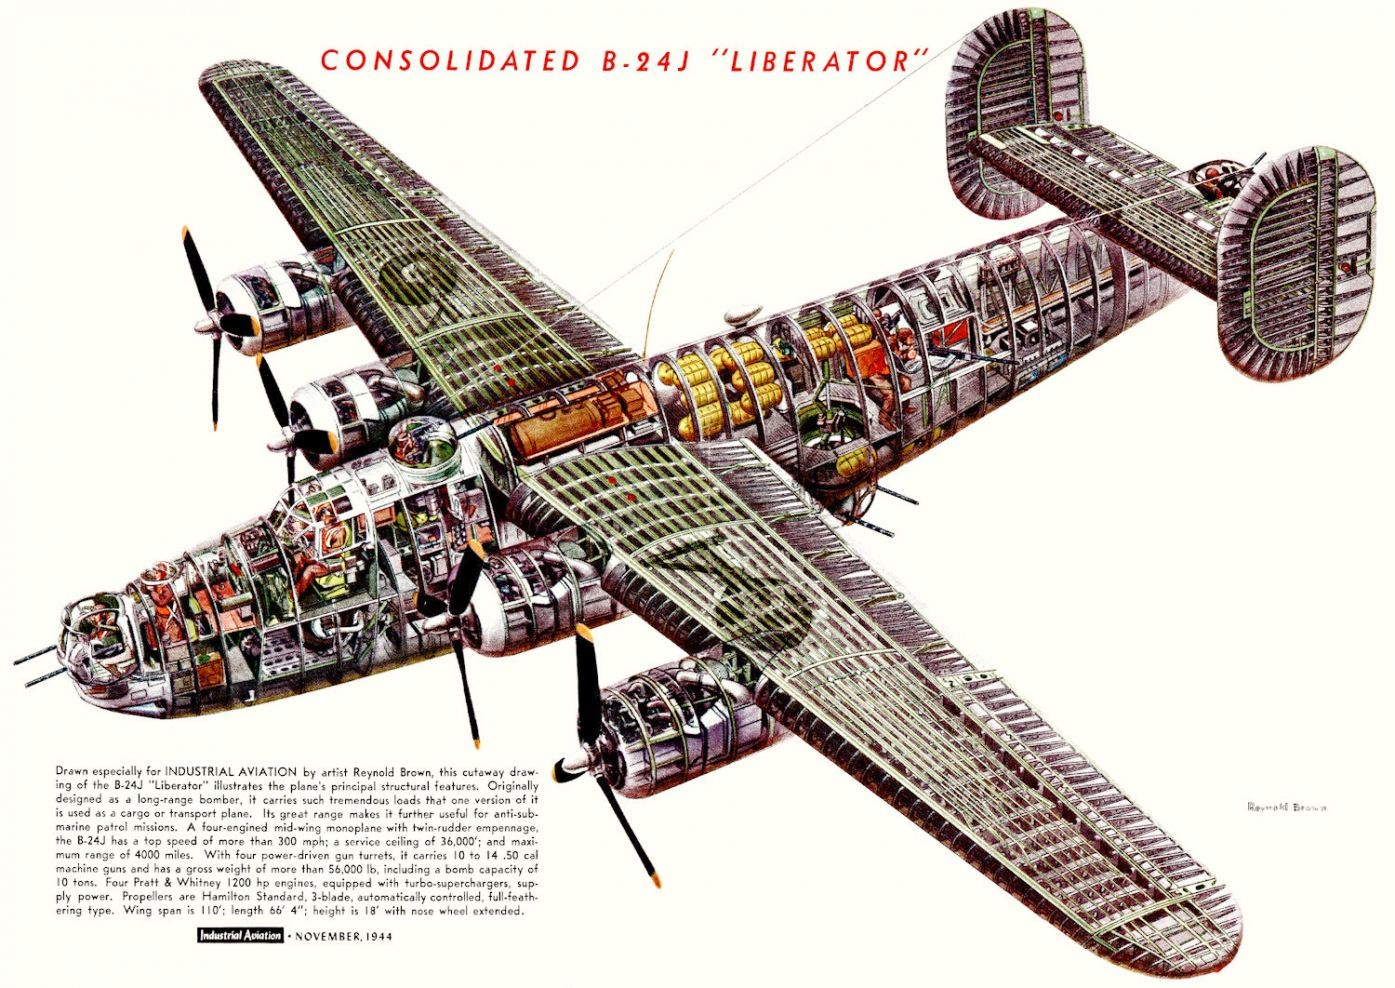 Consolidated B-24j Liberator Plane Internal Structure